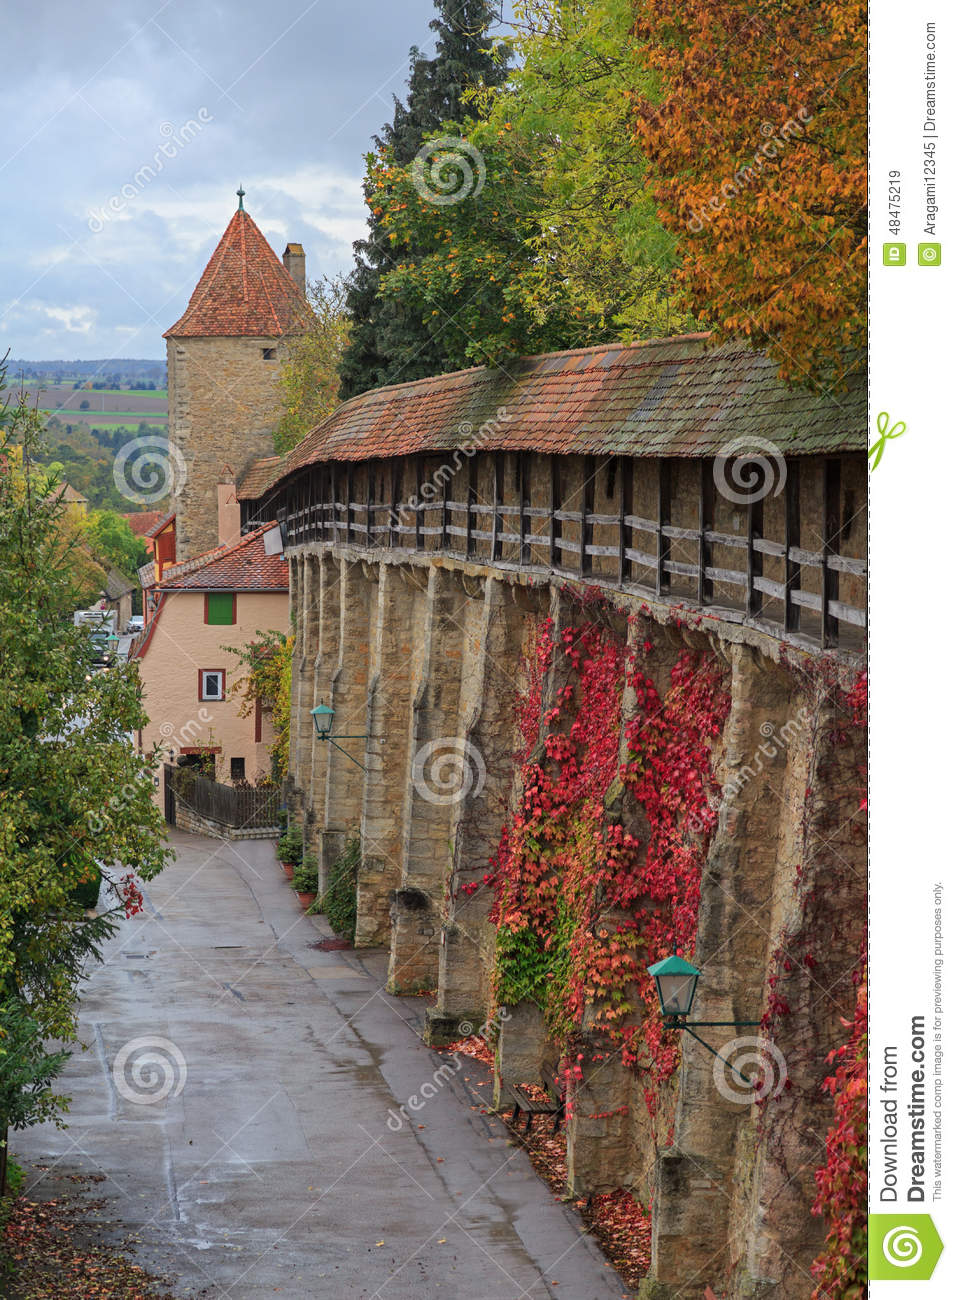 Rothenburg en la pared y la torre del castillo de Tauber